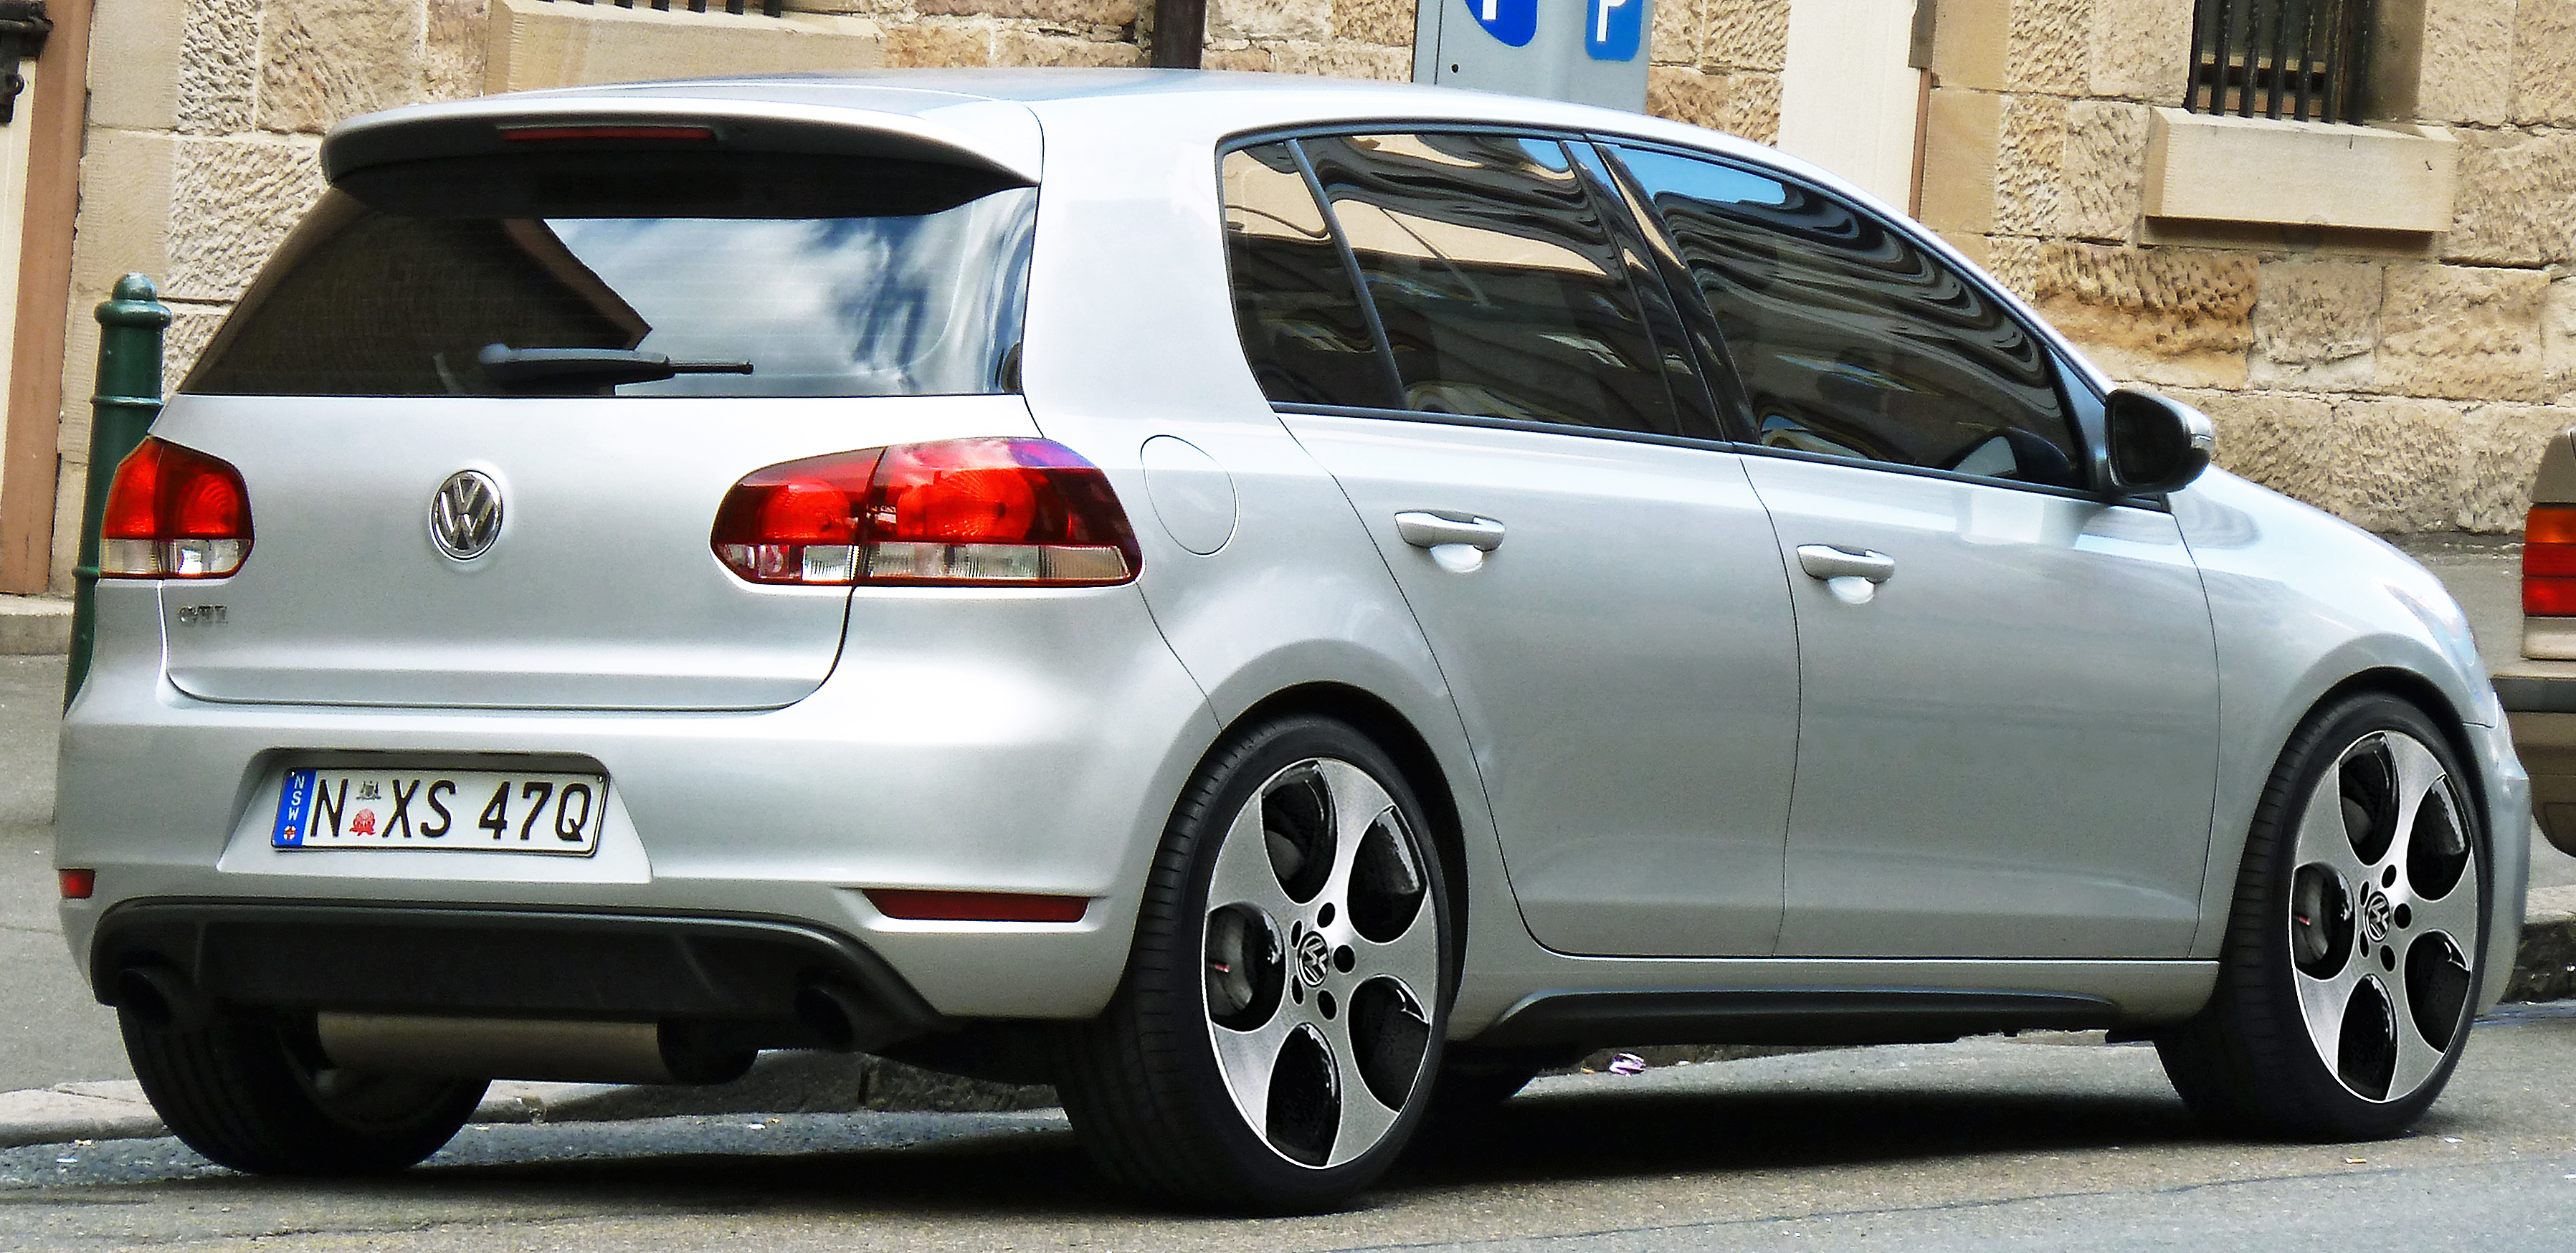 file 2009 2011 volkswagen golf 5k gti 5 door hatchback 2011 10 31. Black Bedroom Furniture Sets. Home Design Ideas